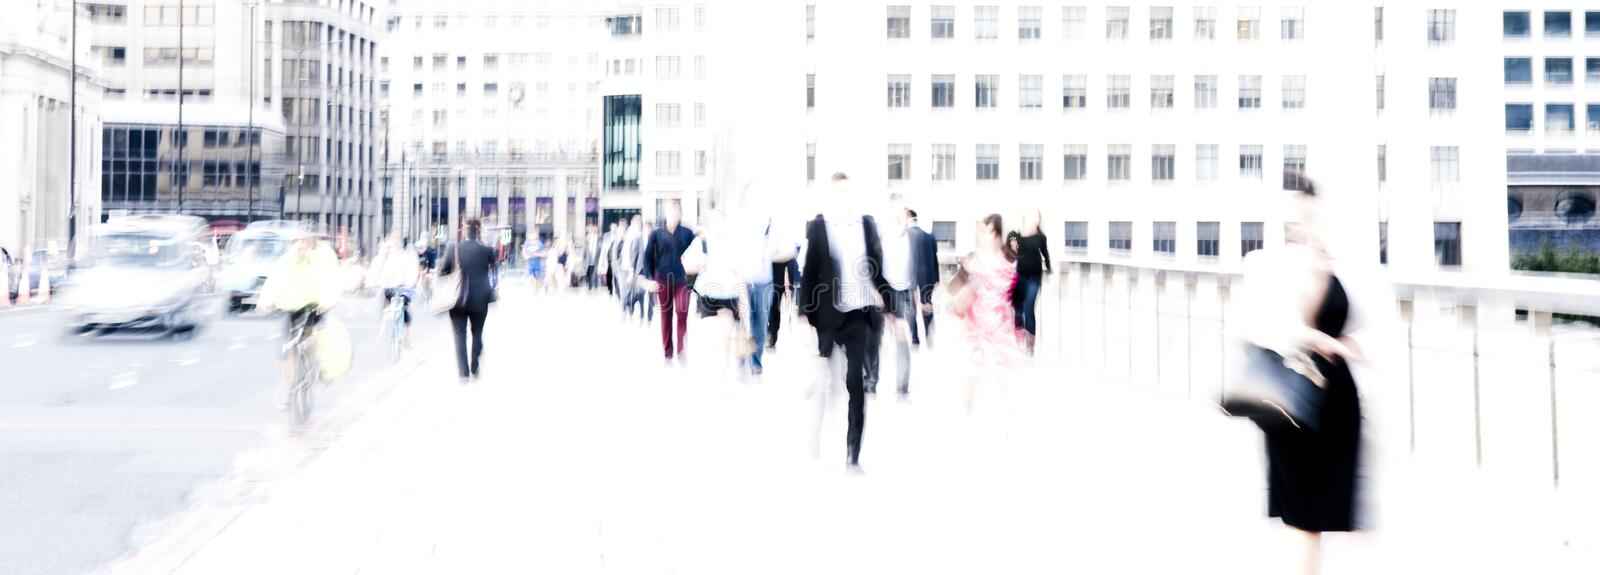 City commuters stock photography